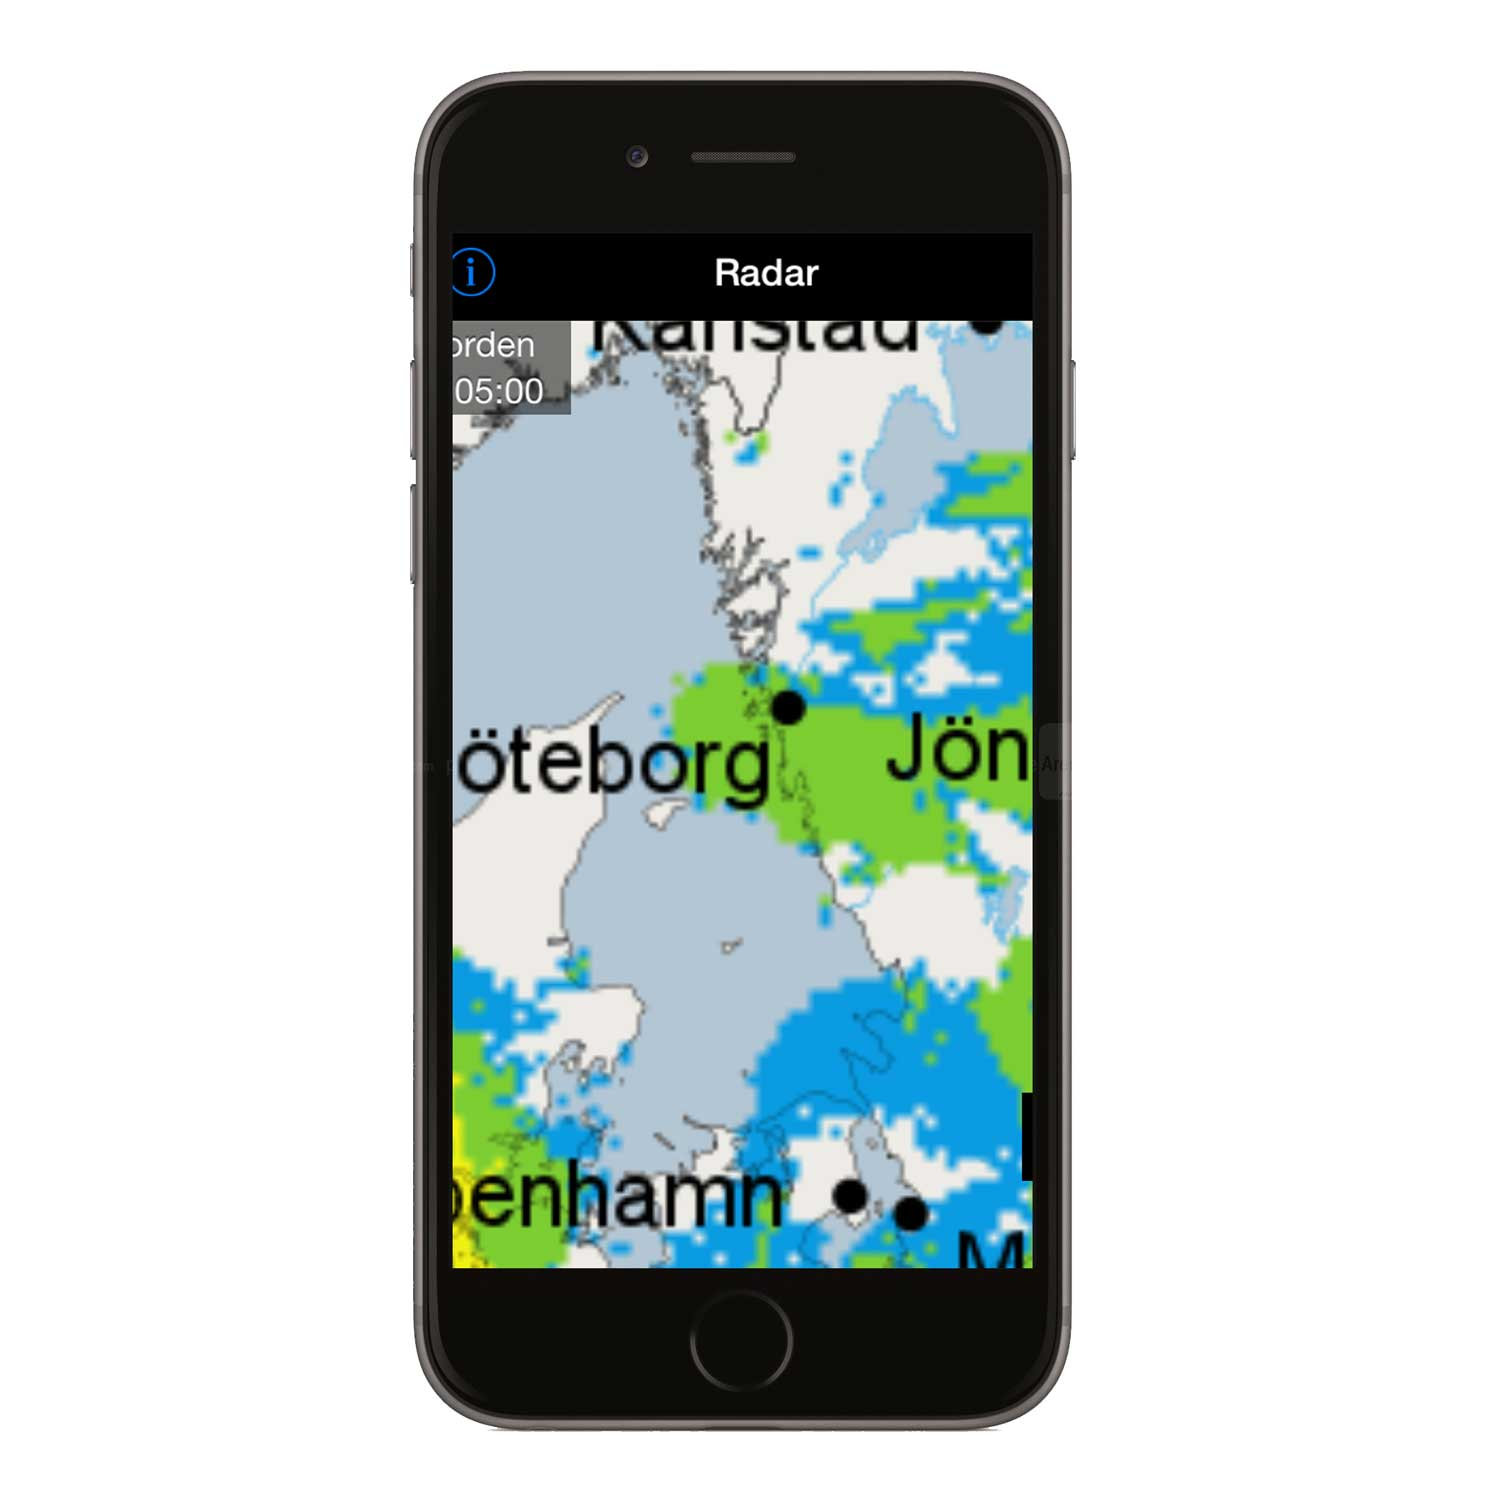 weather-06-radar